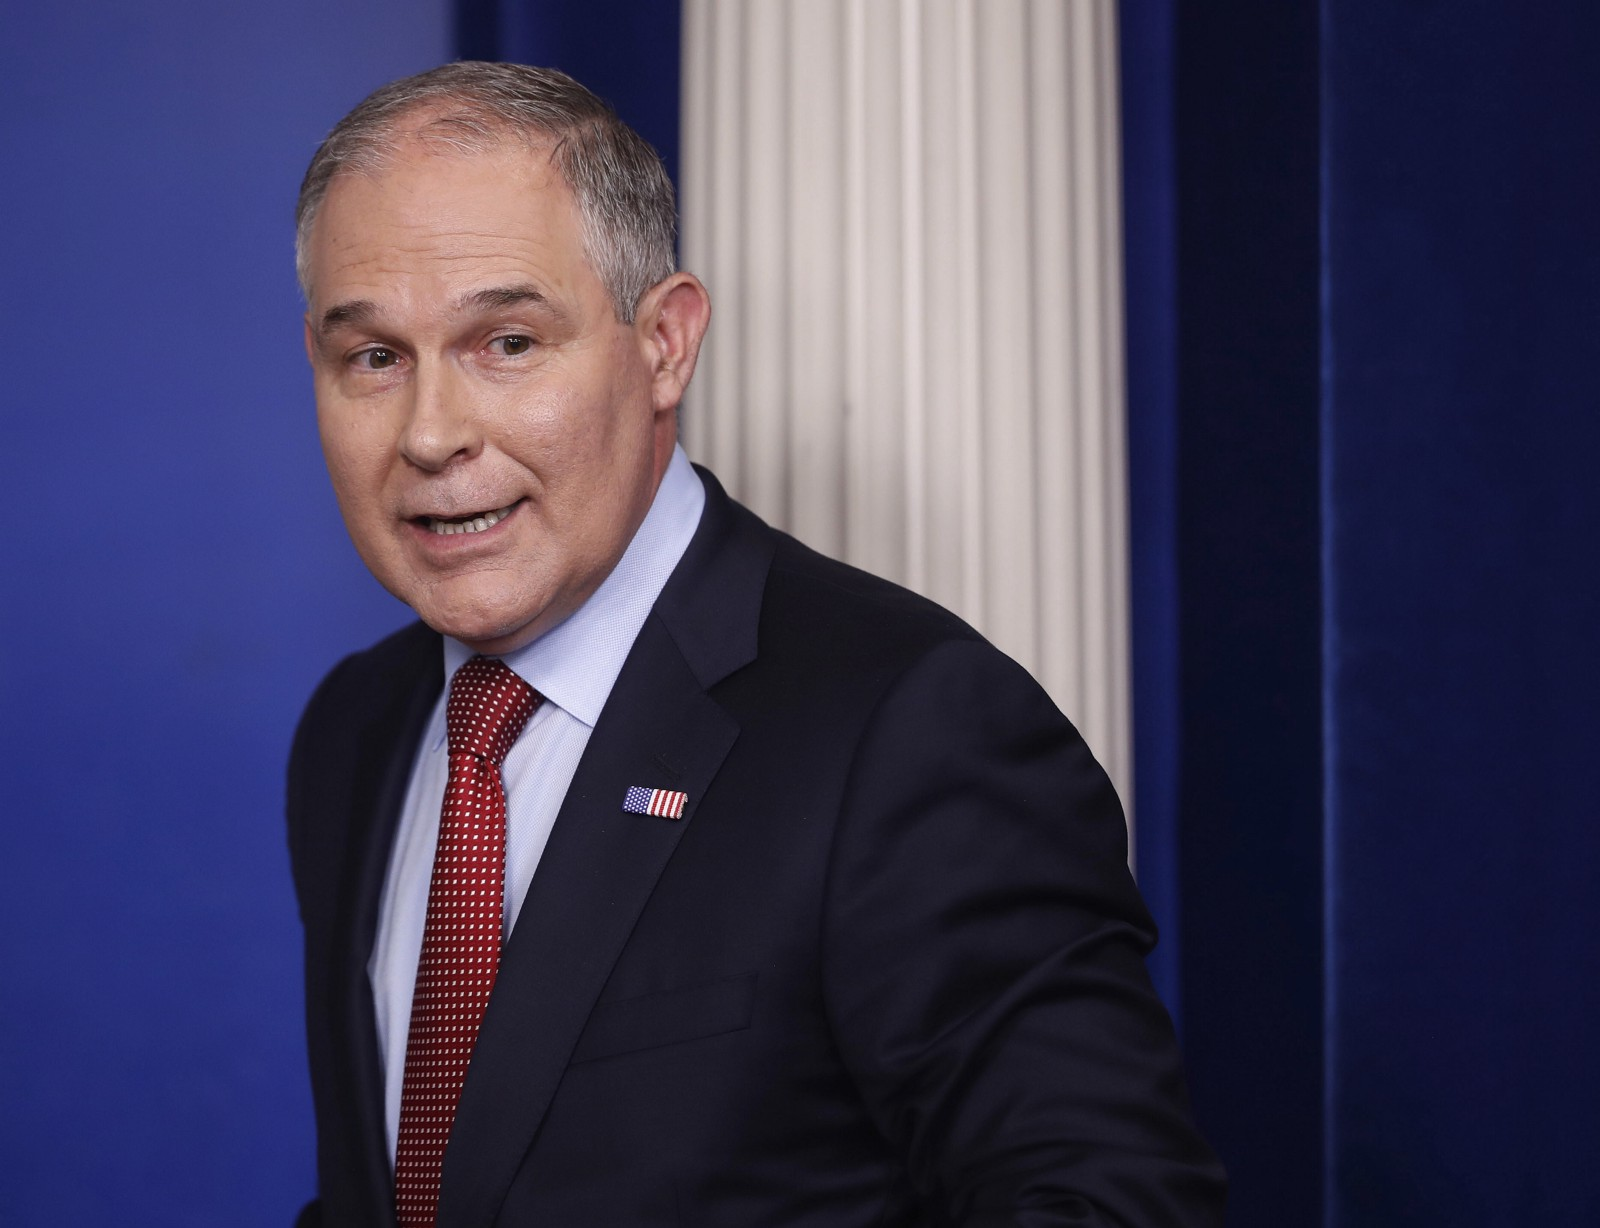 Activist Group Criticizes Scott Pruitt For Something Obama's EPA Chiefs Did Frequently